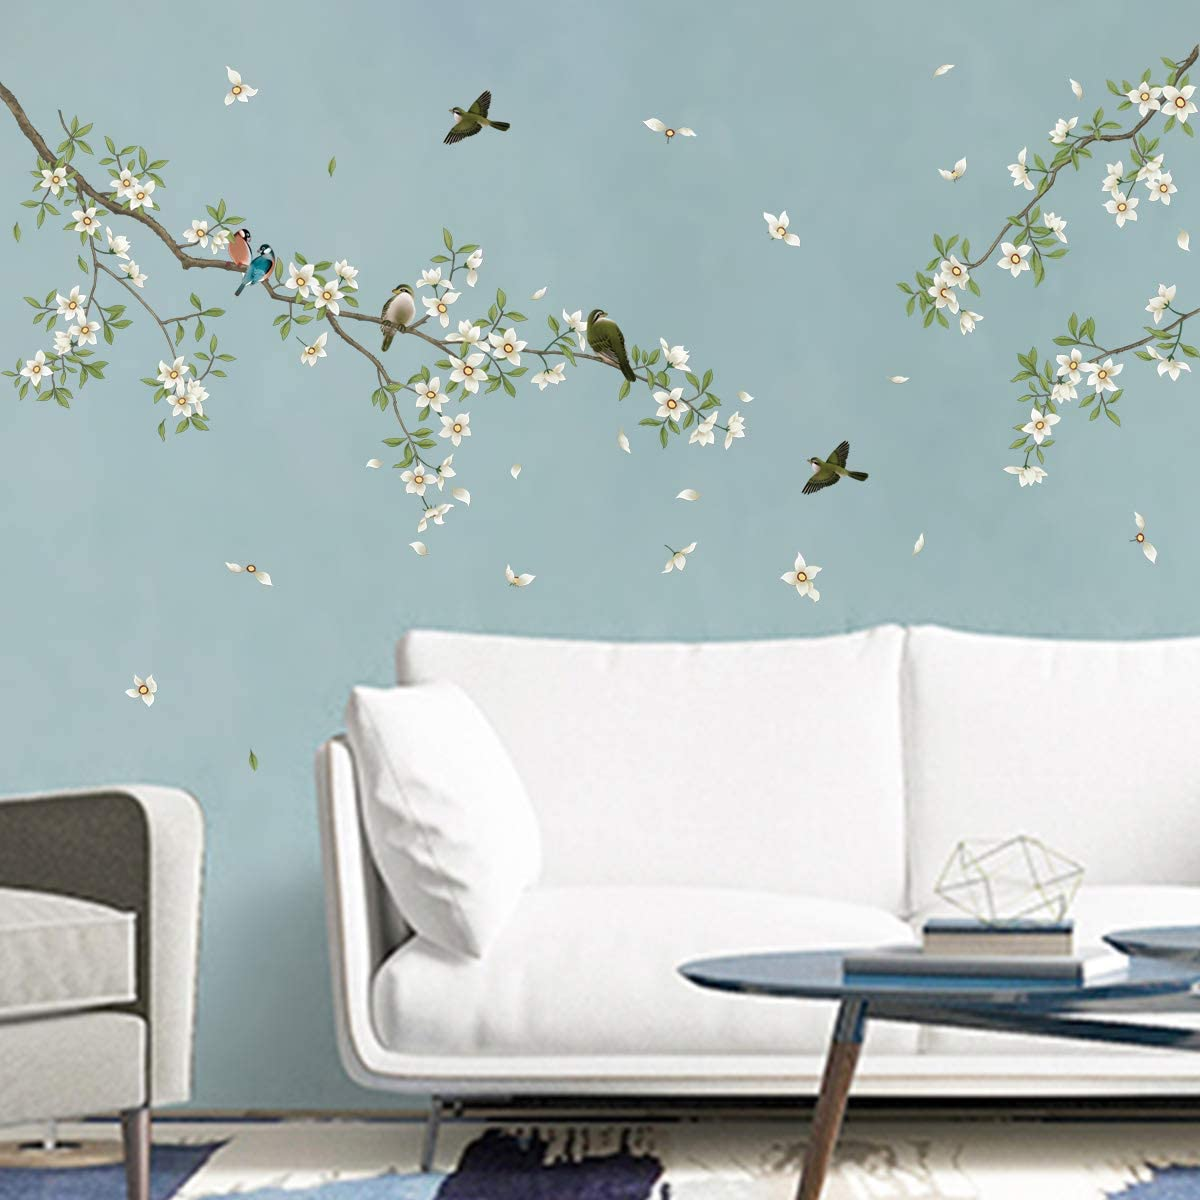 Amazon Com Decalmile Birds On Tree Branch Wall Decals White Blossom Flower Wall Stickers Bedroom Living Room Tv Wall Art Home Decor Arts Crafts Sewing